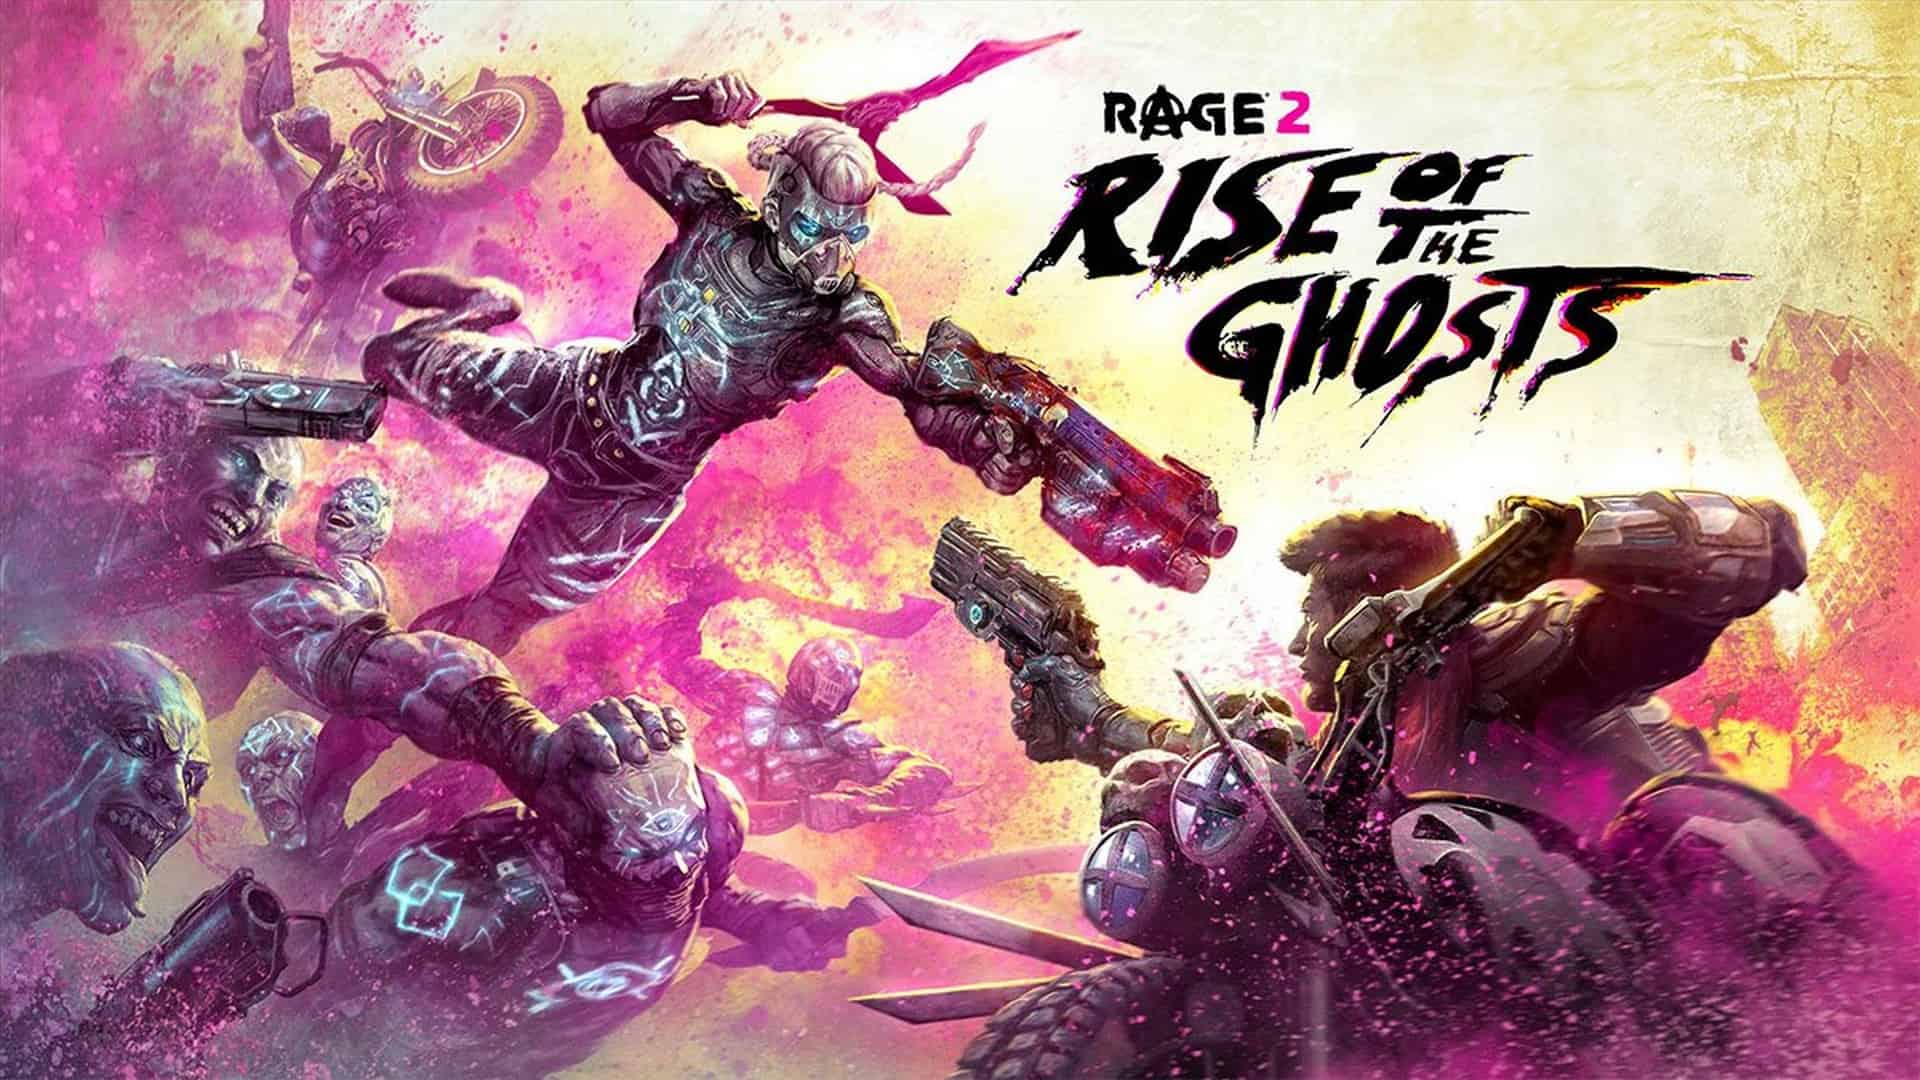 RAGE 2's Rise of the Ghost Expansion Available Now